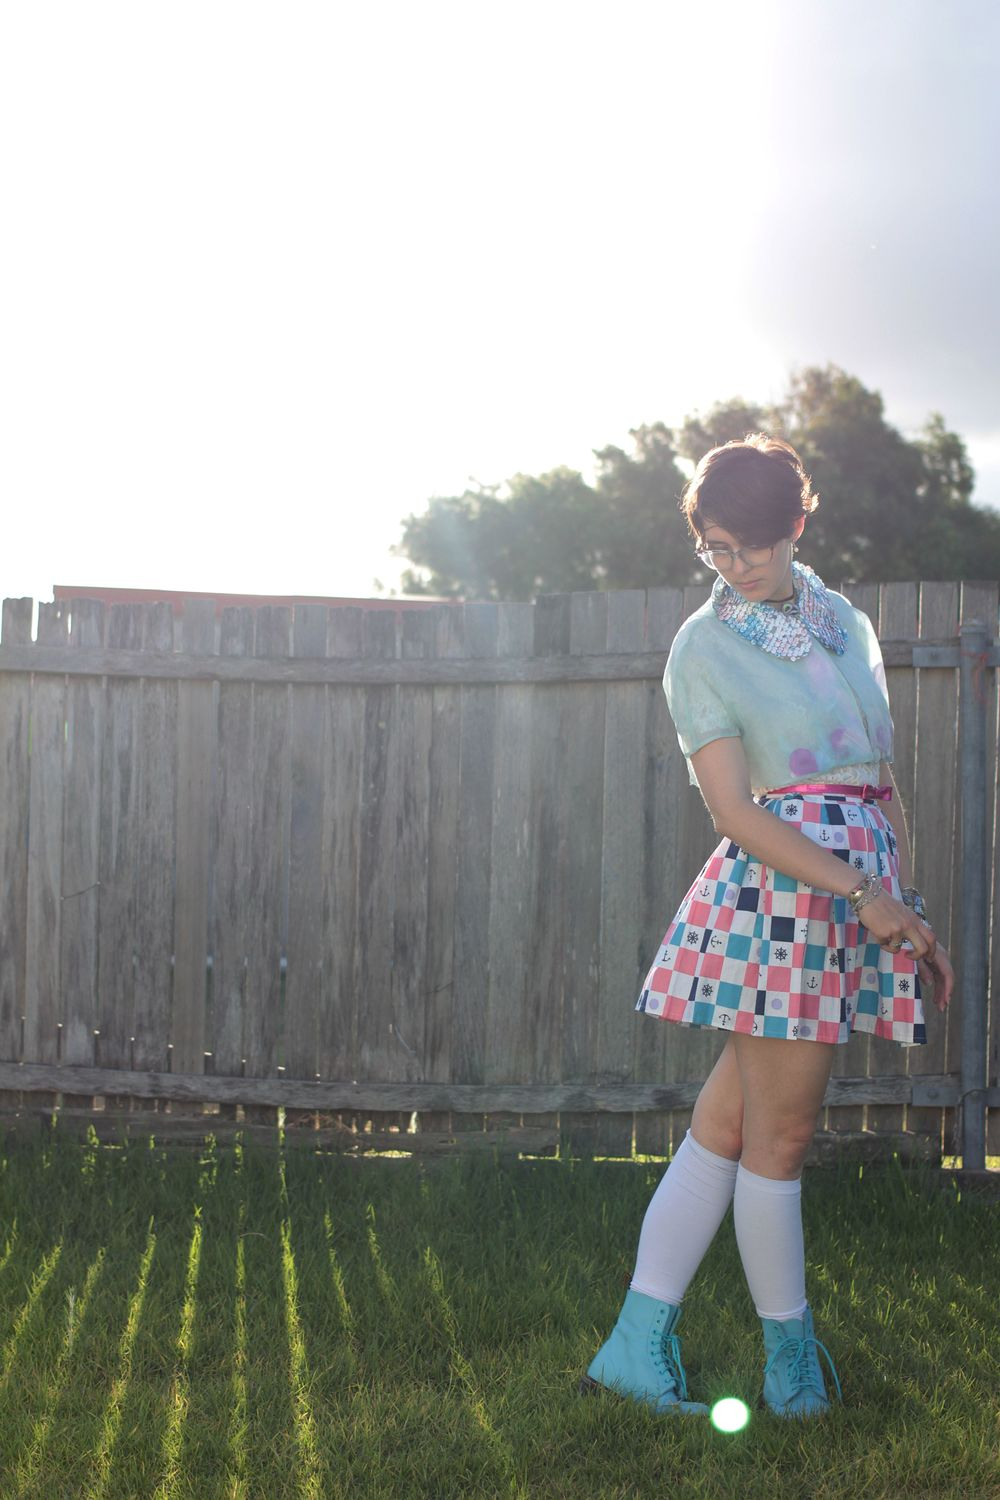 Bolero: Lady Petrova, Shirt: Ebay, Belt: Kmart, Skirt: Home made, Socks: Socks and more, Boots: Dr Martens.